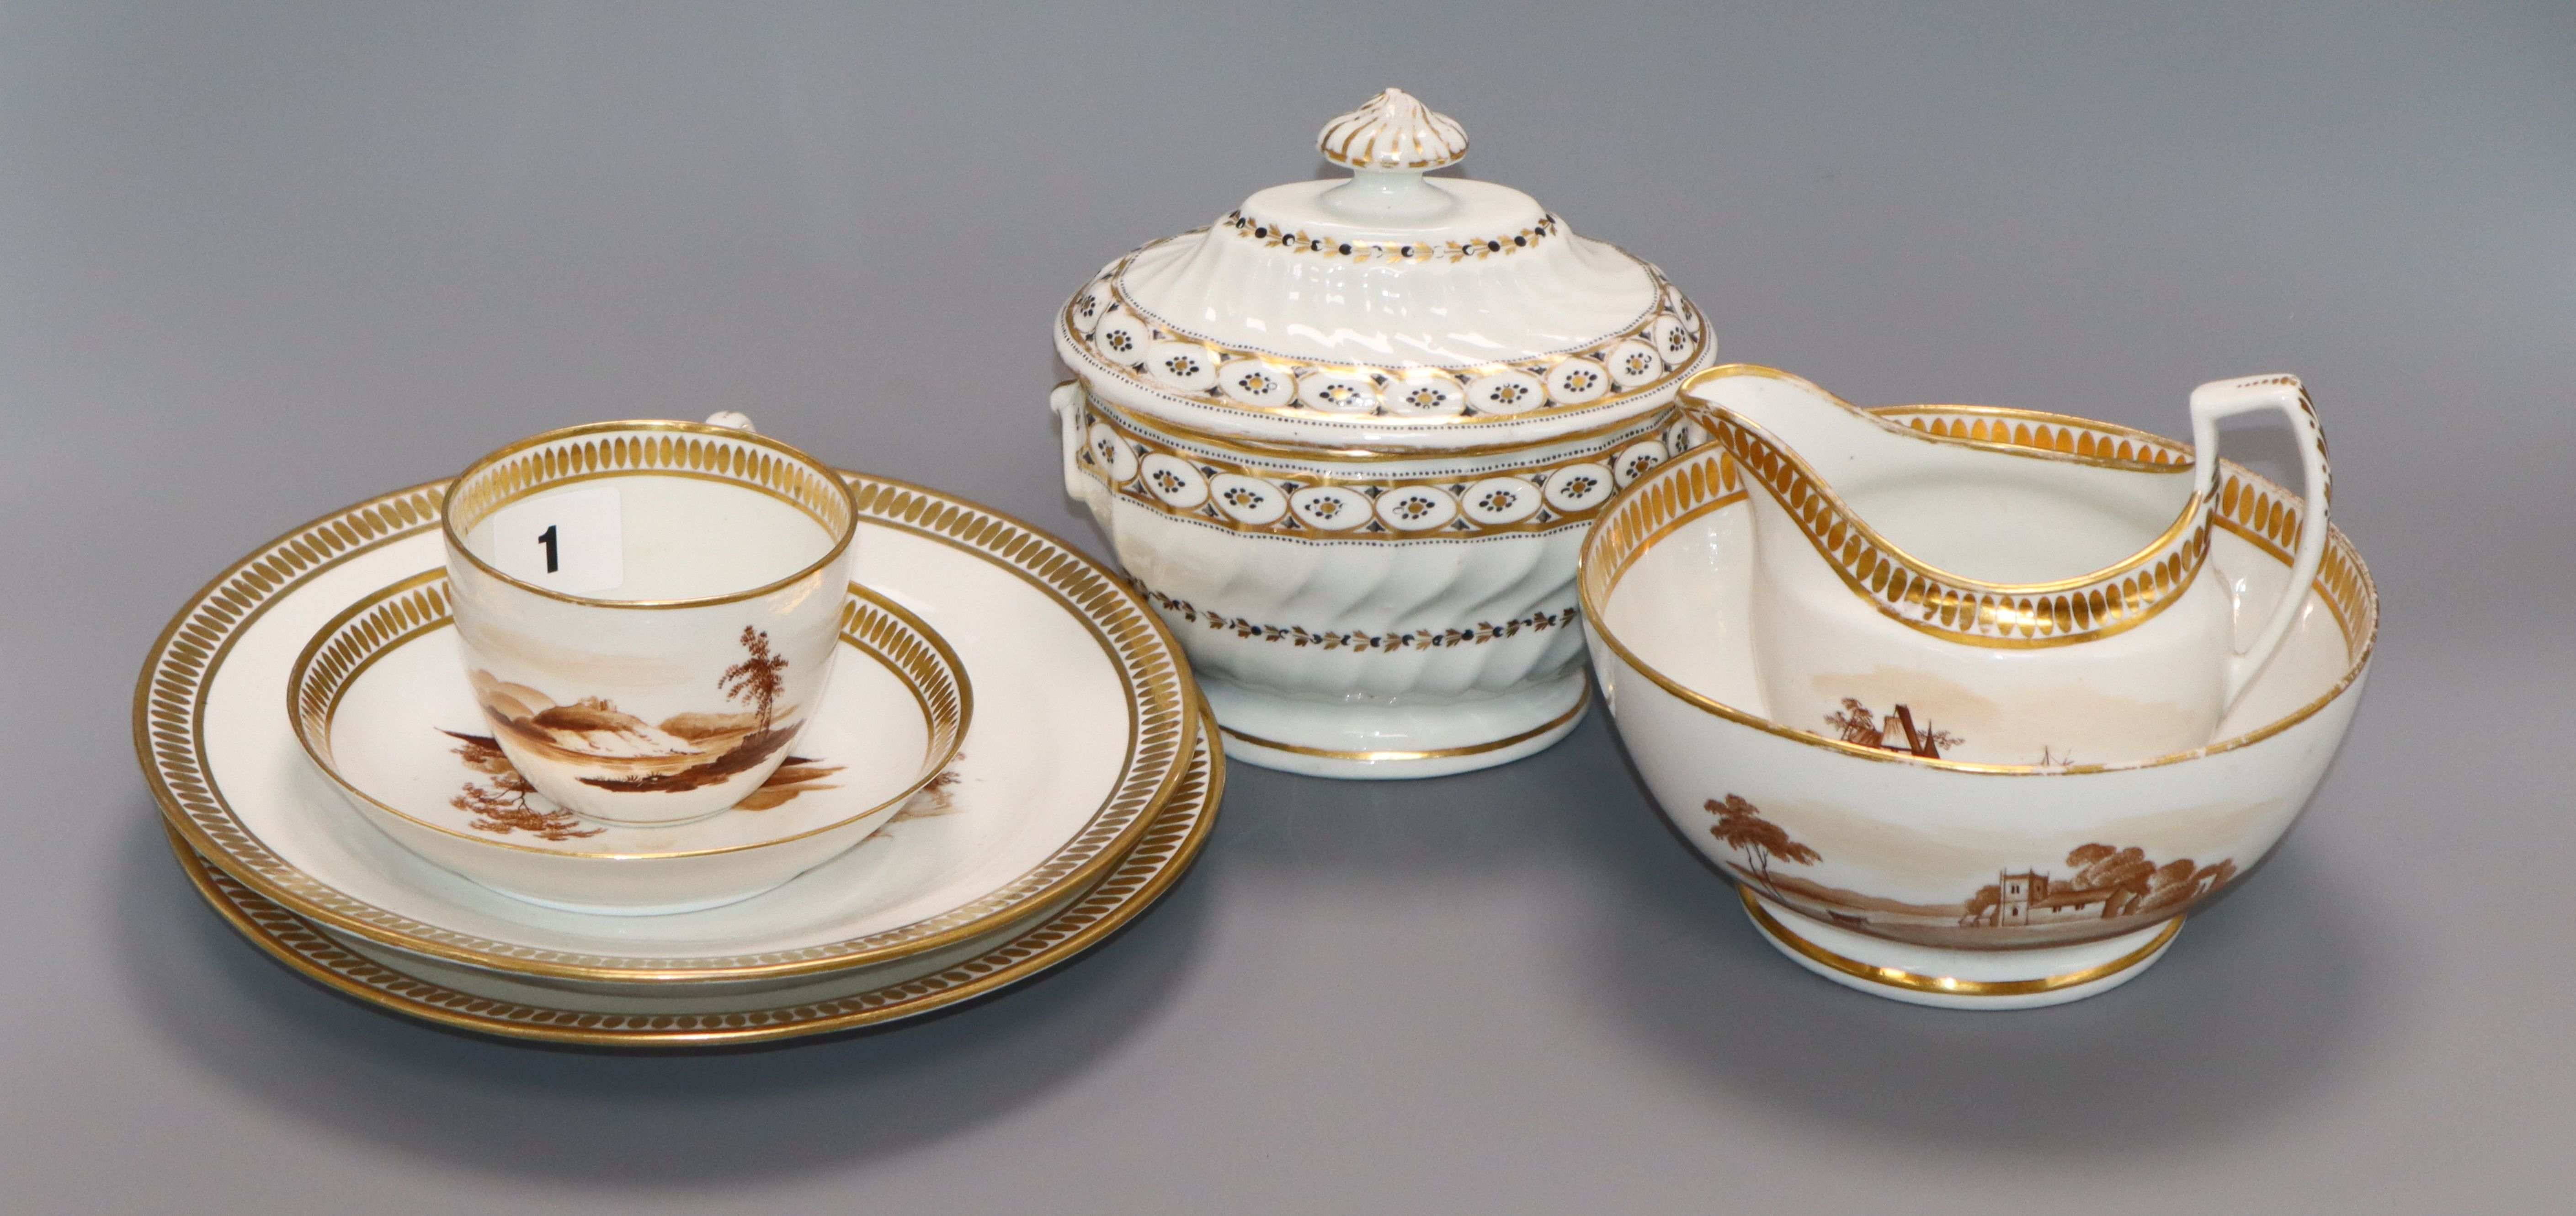 Lot 1 - A Chamberlains Worcester part tea and coffee set and a similar sucrier